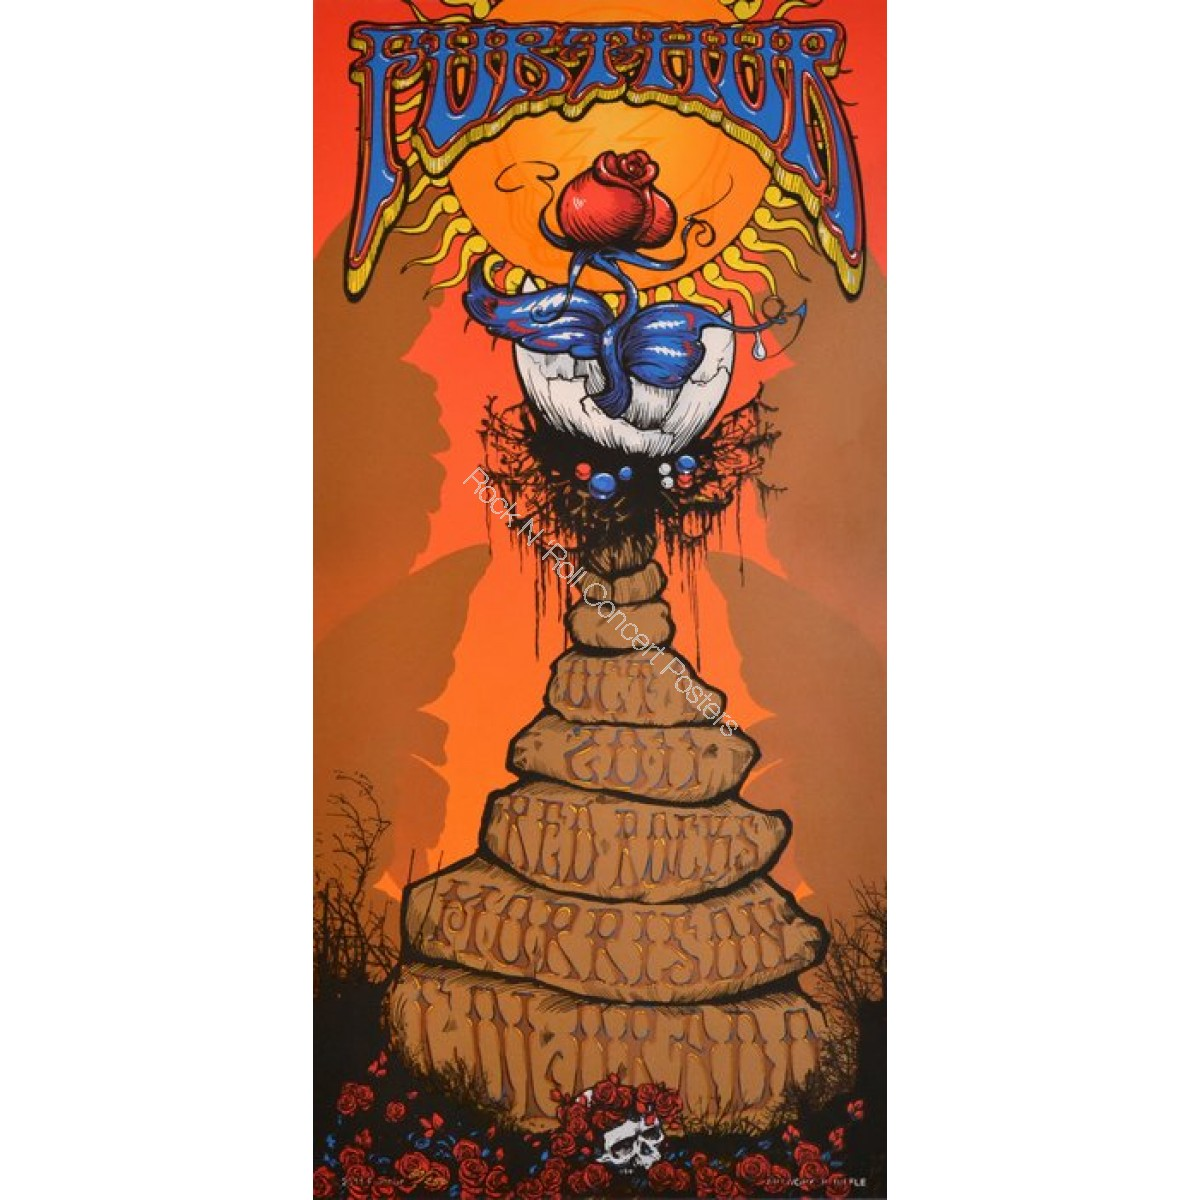 Furthur Red Red Rocks 10/1/11 Official print